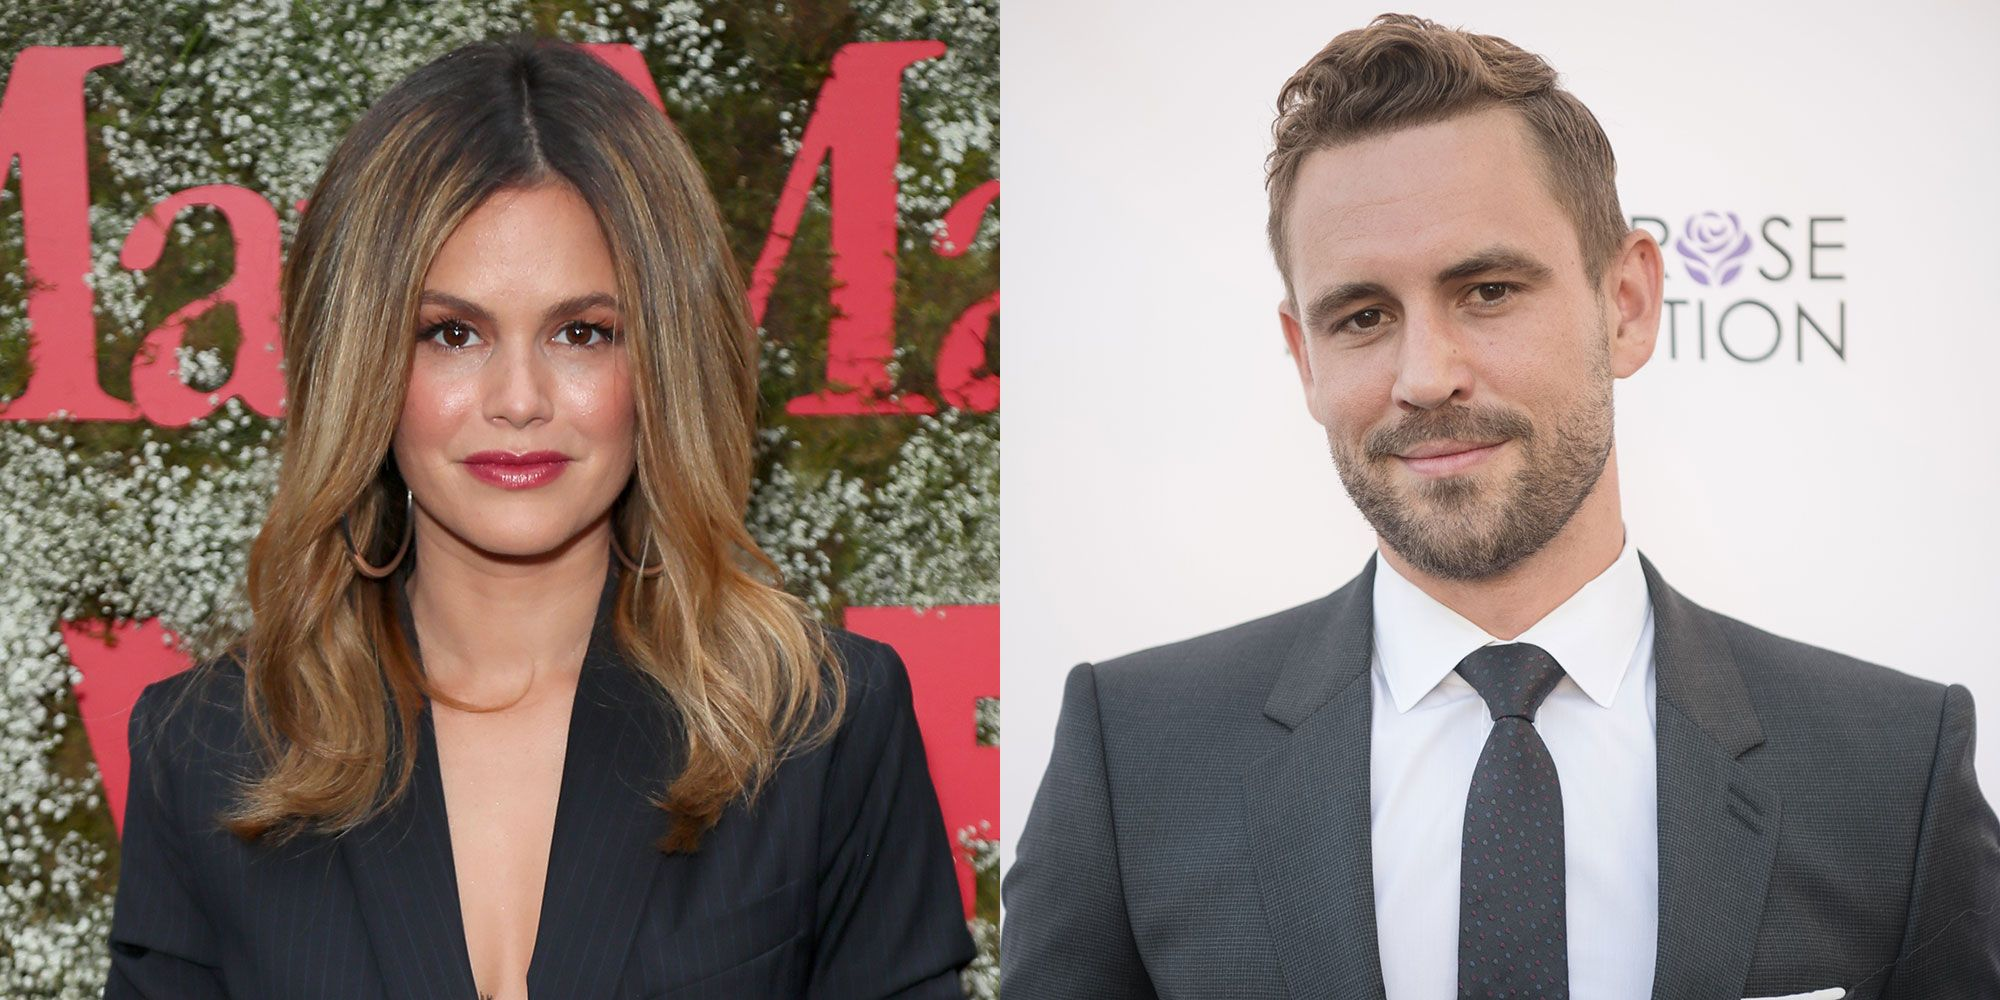 Rachel Bilson Was Asked If She and Nick Viall Are Dating, and She Didn't Shut the Rumor Down